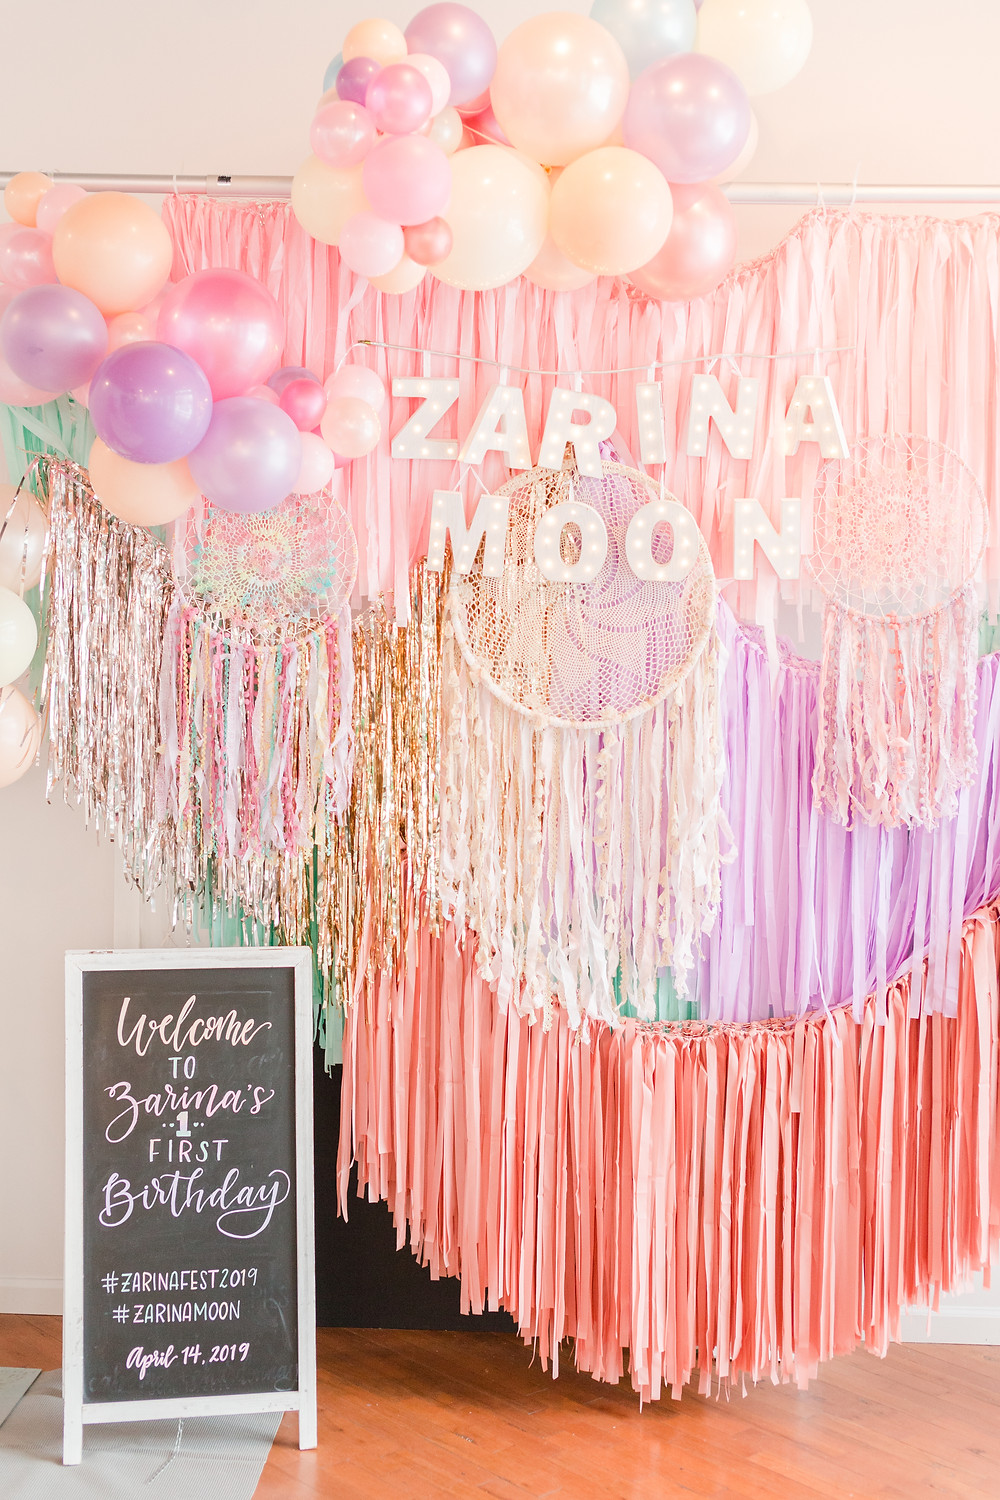 Boho-style backdrop in colorful balloons, streamers, and dream catchers